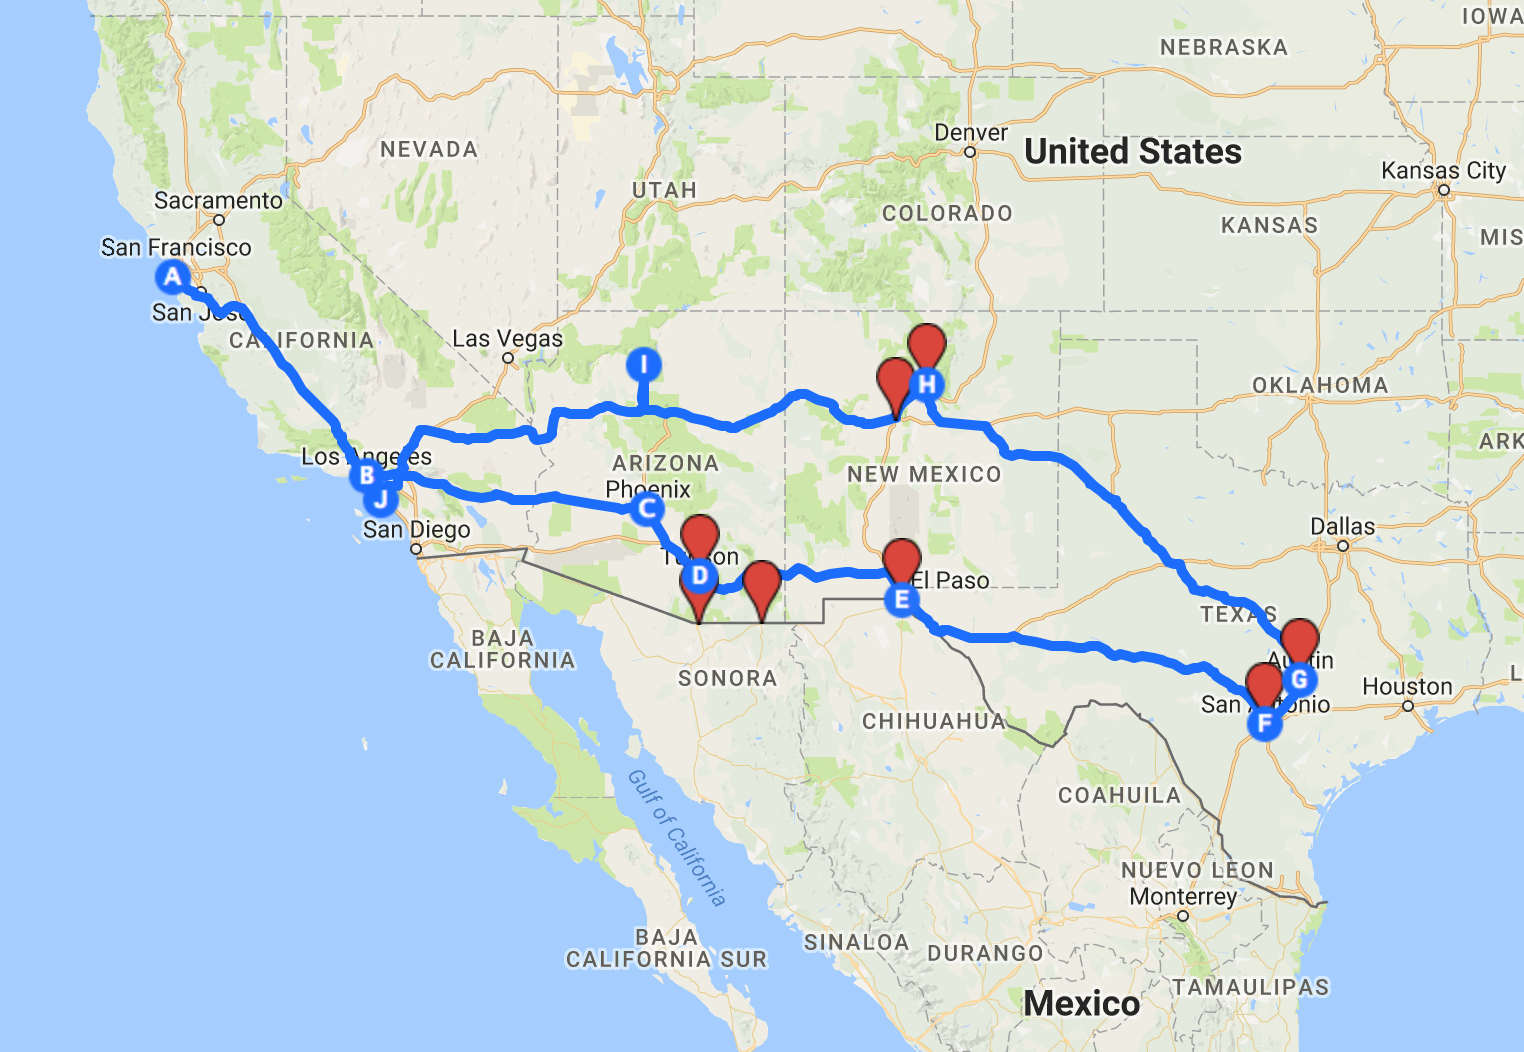 route between California and Texas